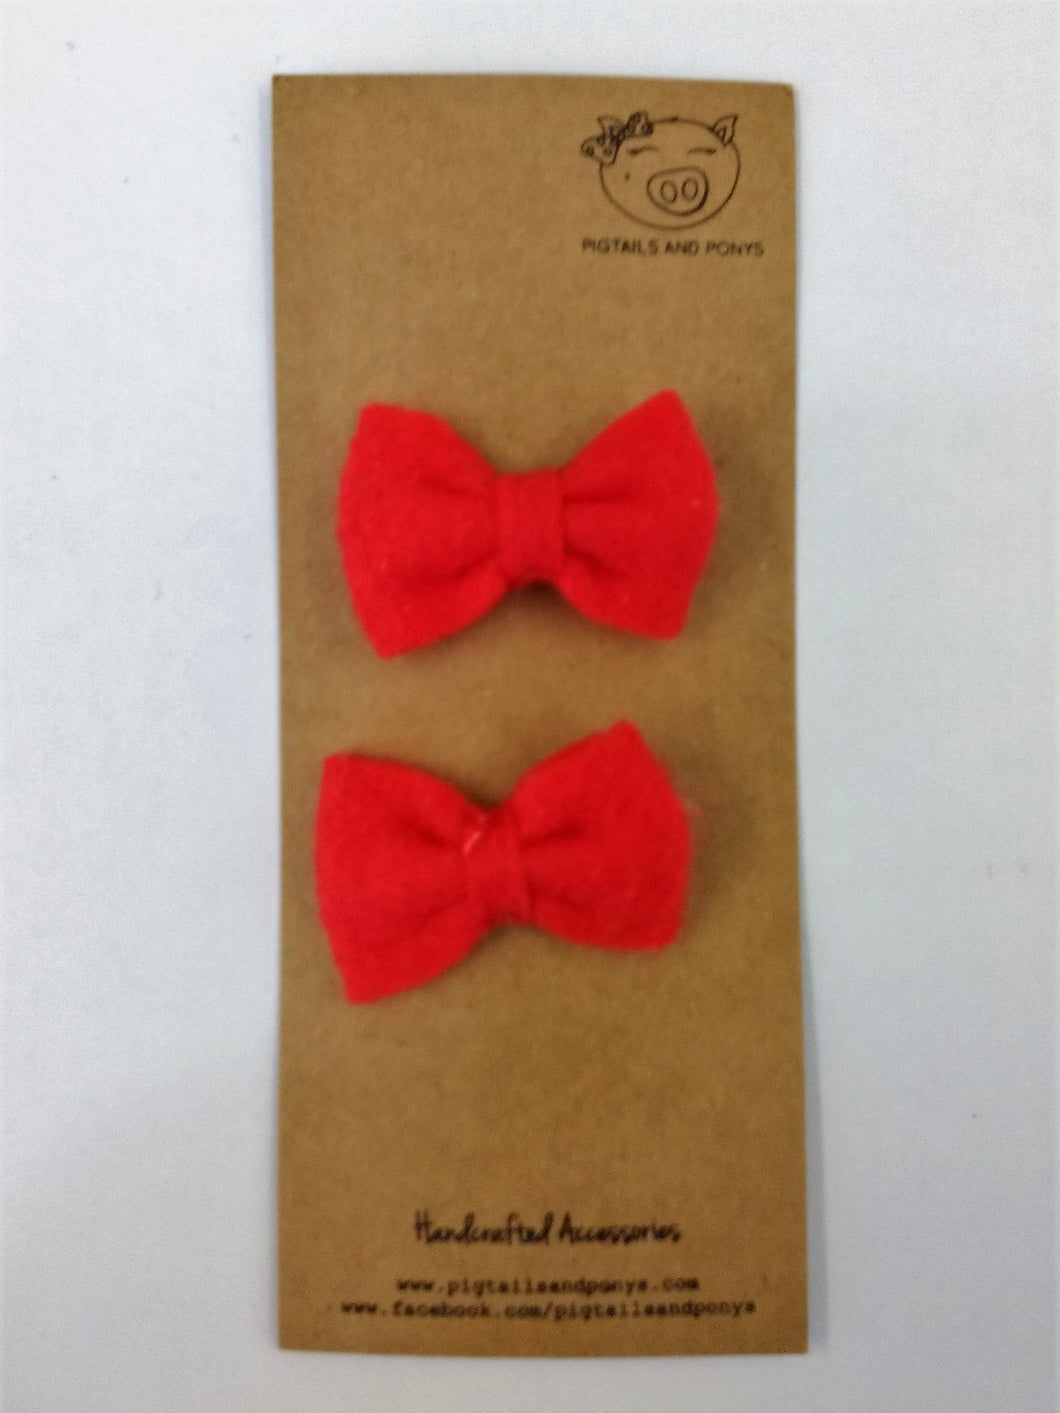 Pigtails and Pony (red felt bow tie)